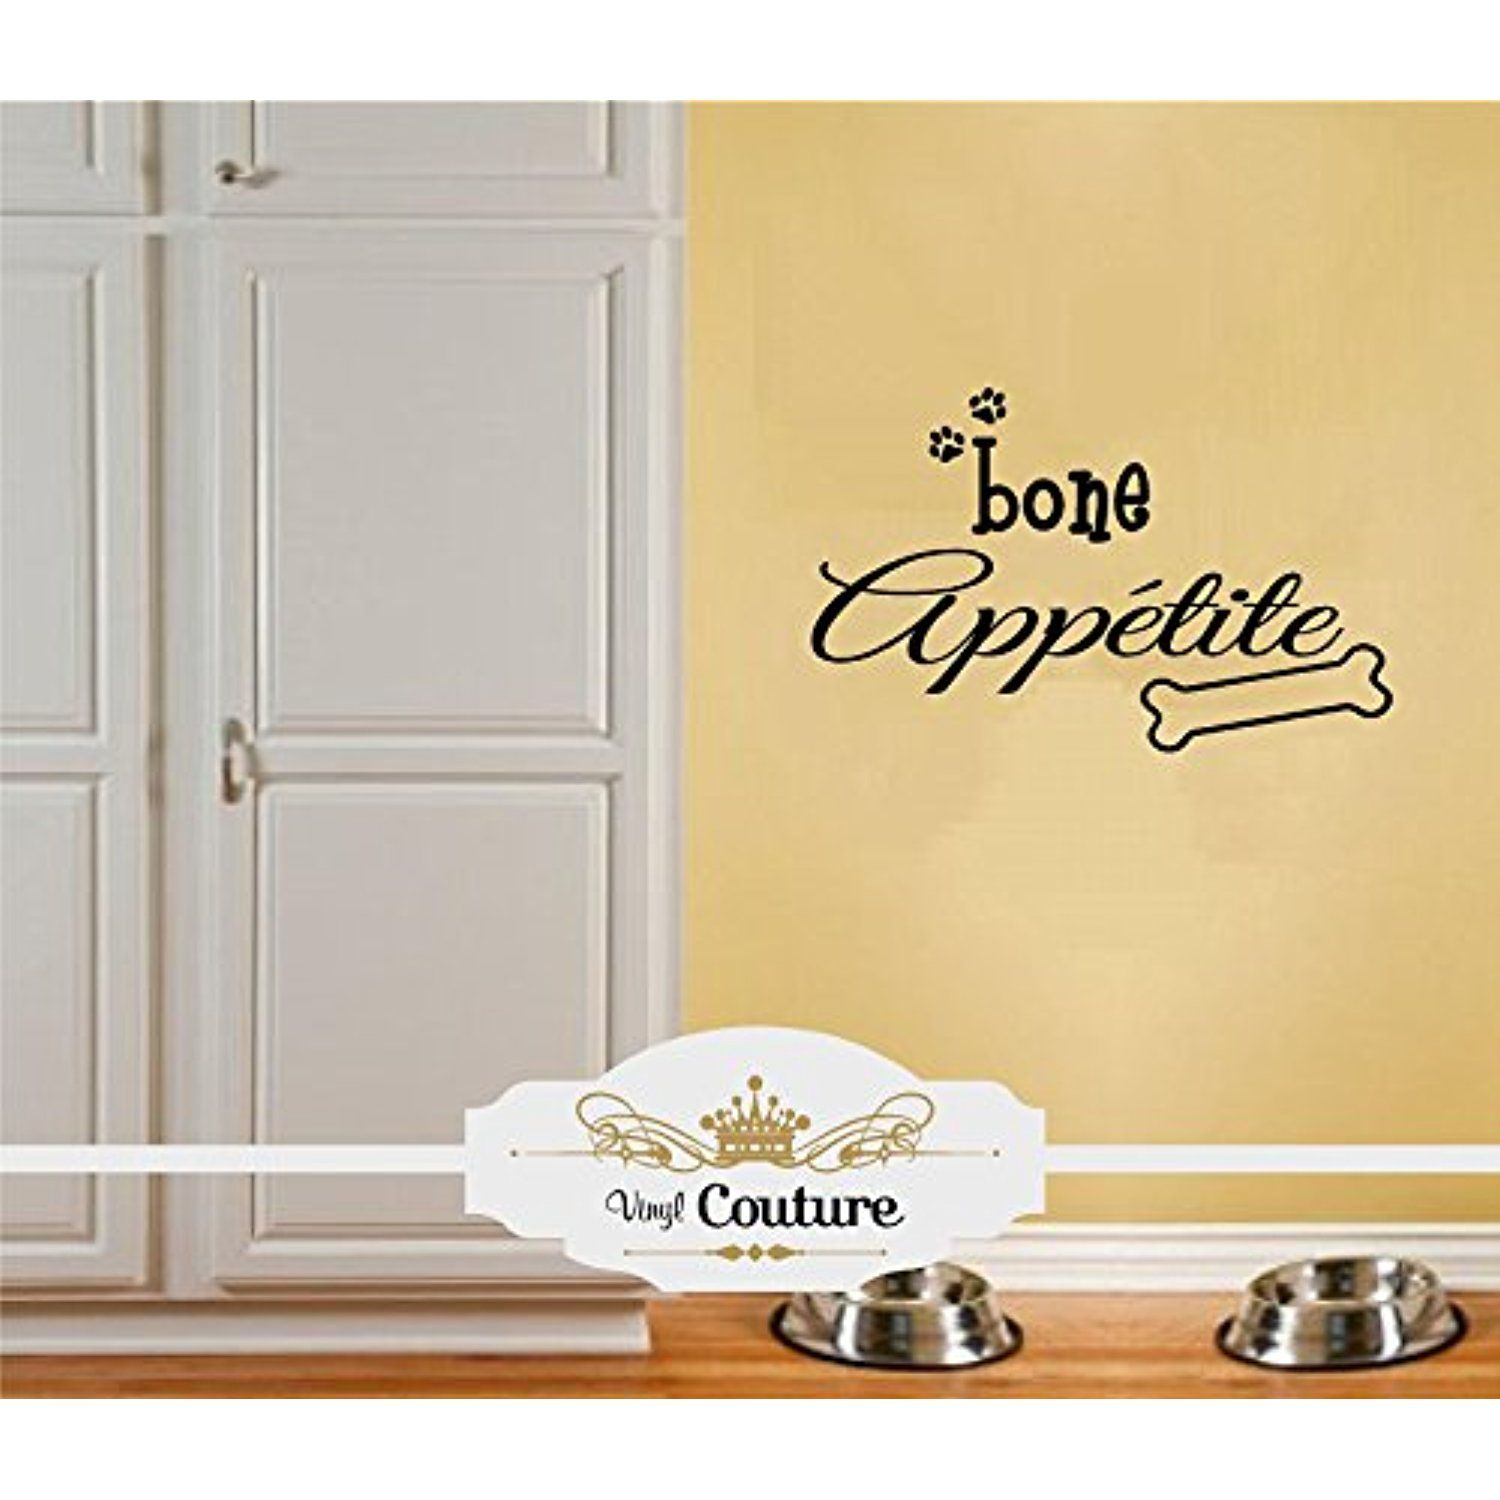 Bone Appetite Dog Dinner Vinyl Wall Art vinyl wall lettering words ...